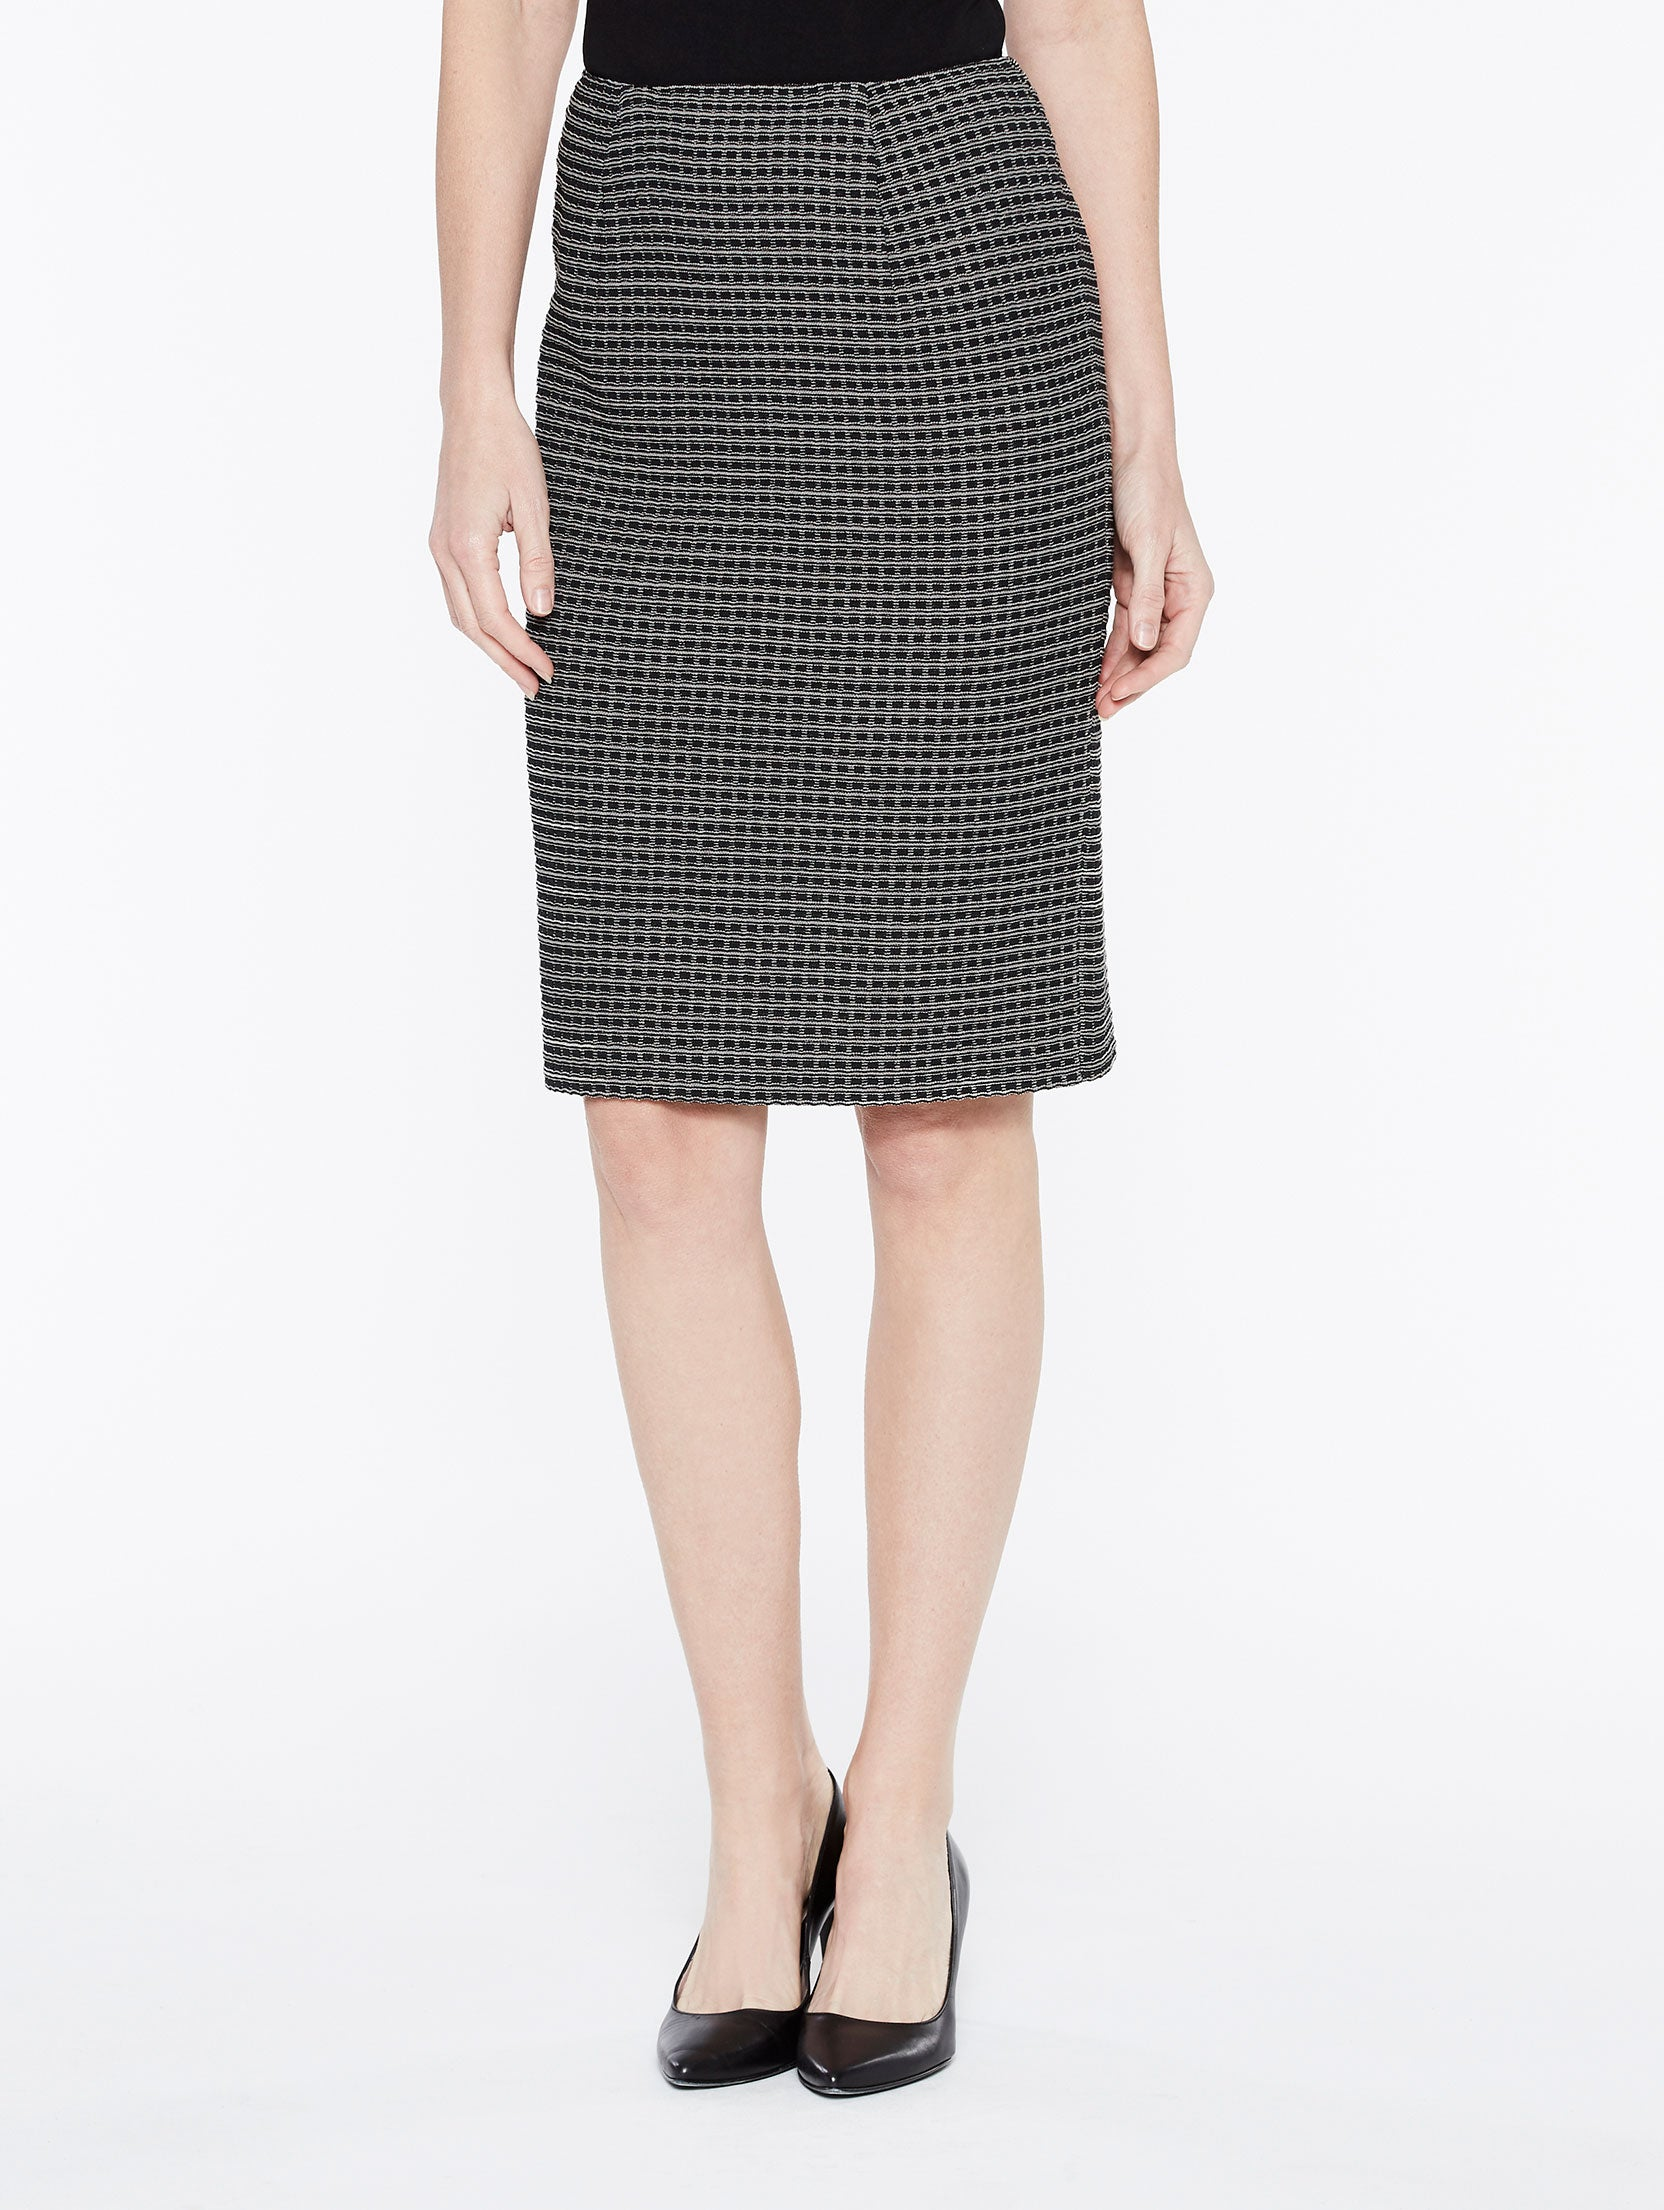 Tonal Grid Pattern Skirt Color Almond Beige/Black